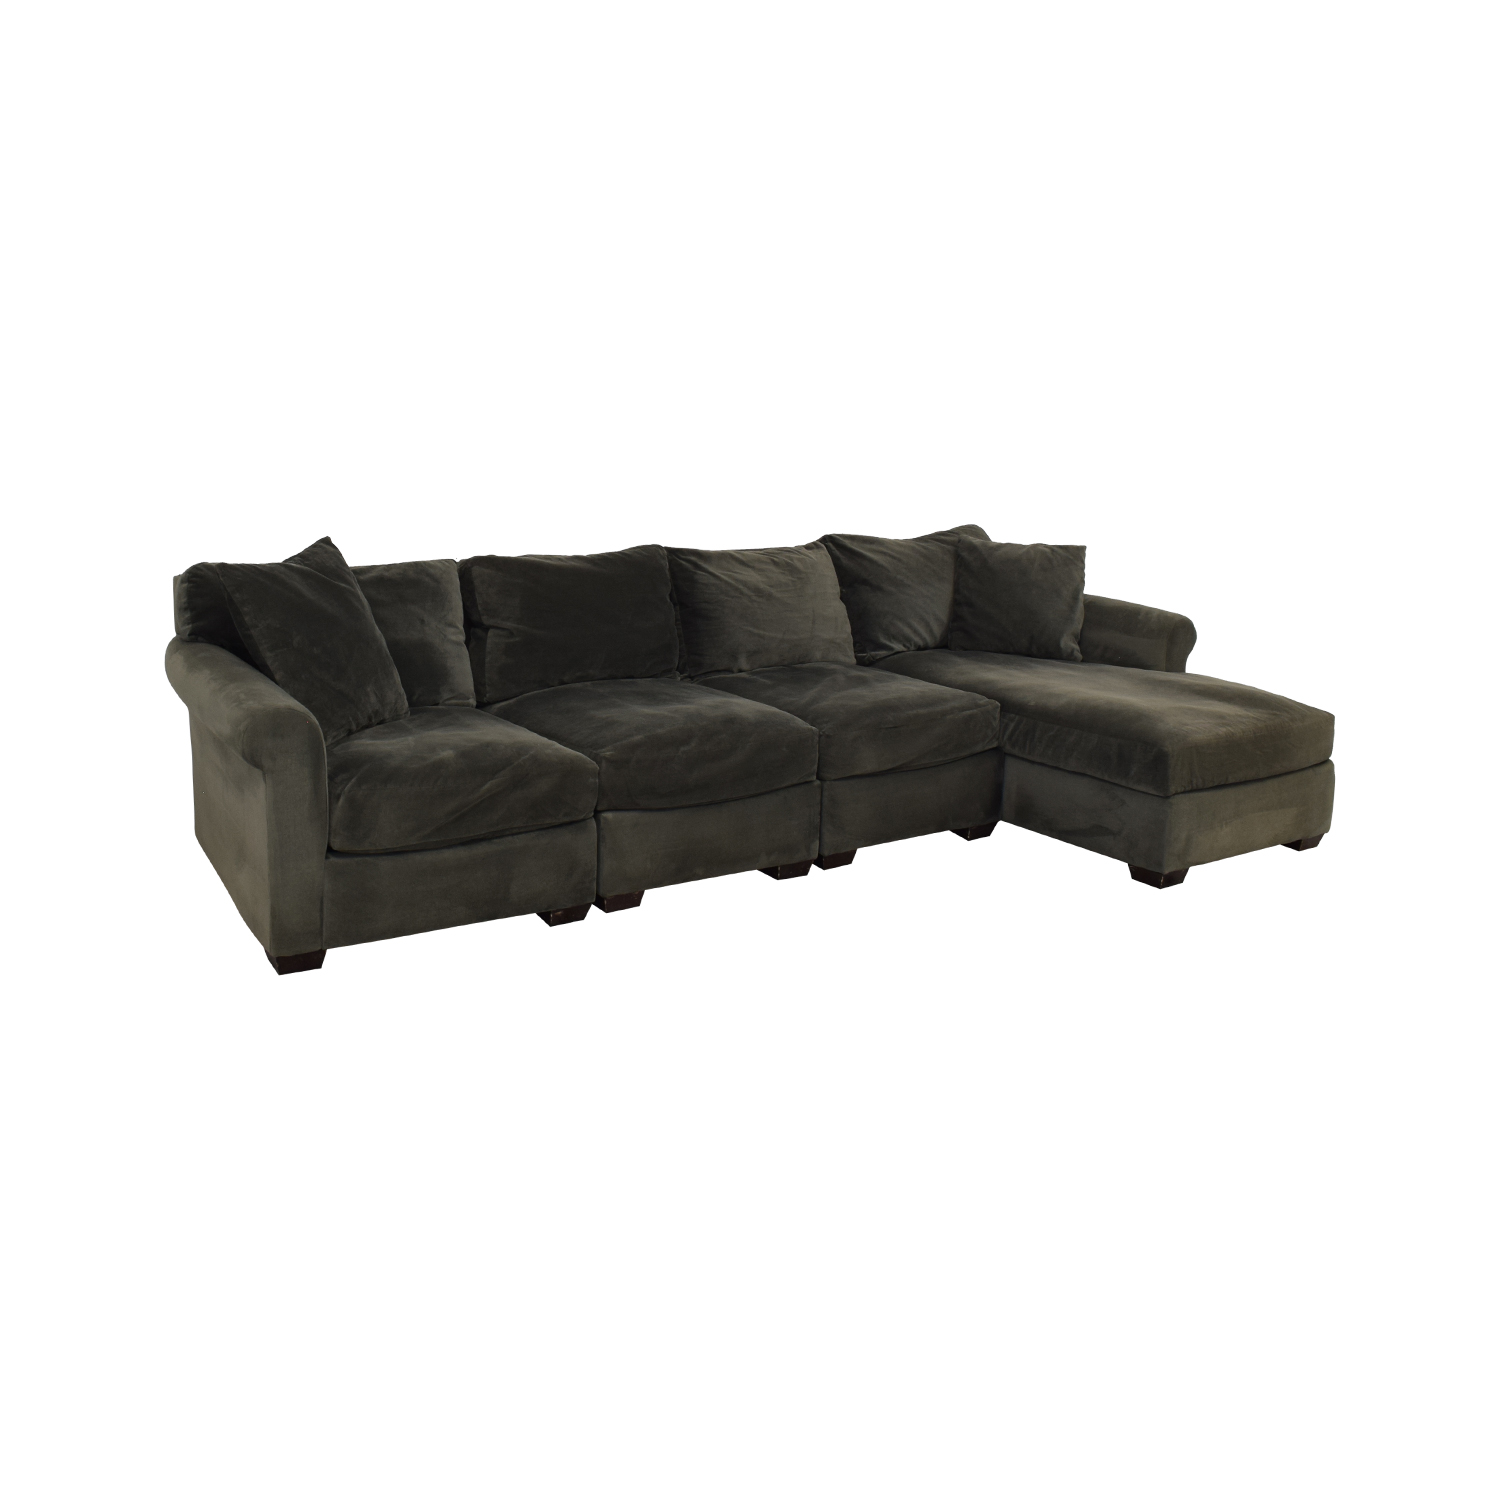 Macy's Chaise Sectional Sofa / Sectionals